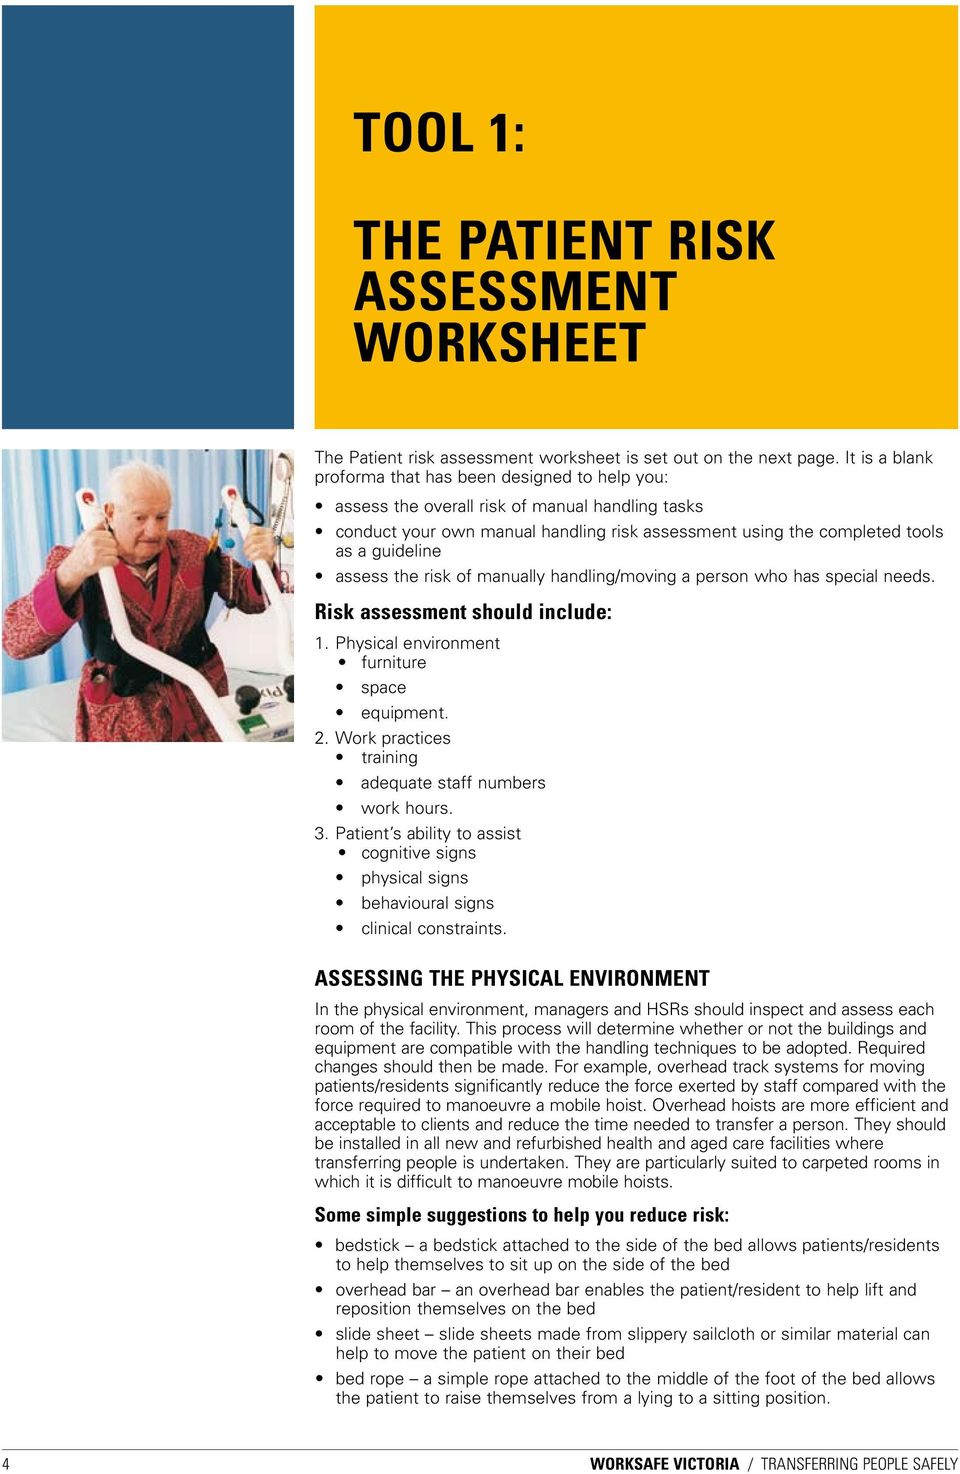 assess the risk of manually handling/moving a person who has special needs. Risk assessment should include: 1. Physical environment furniture space equipment. 2.